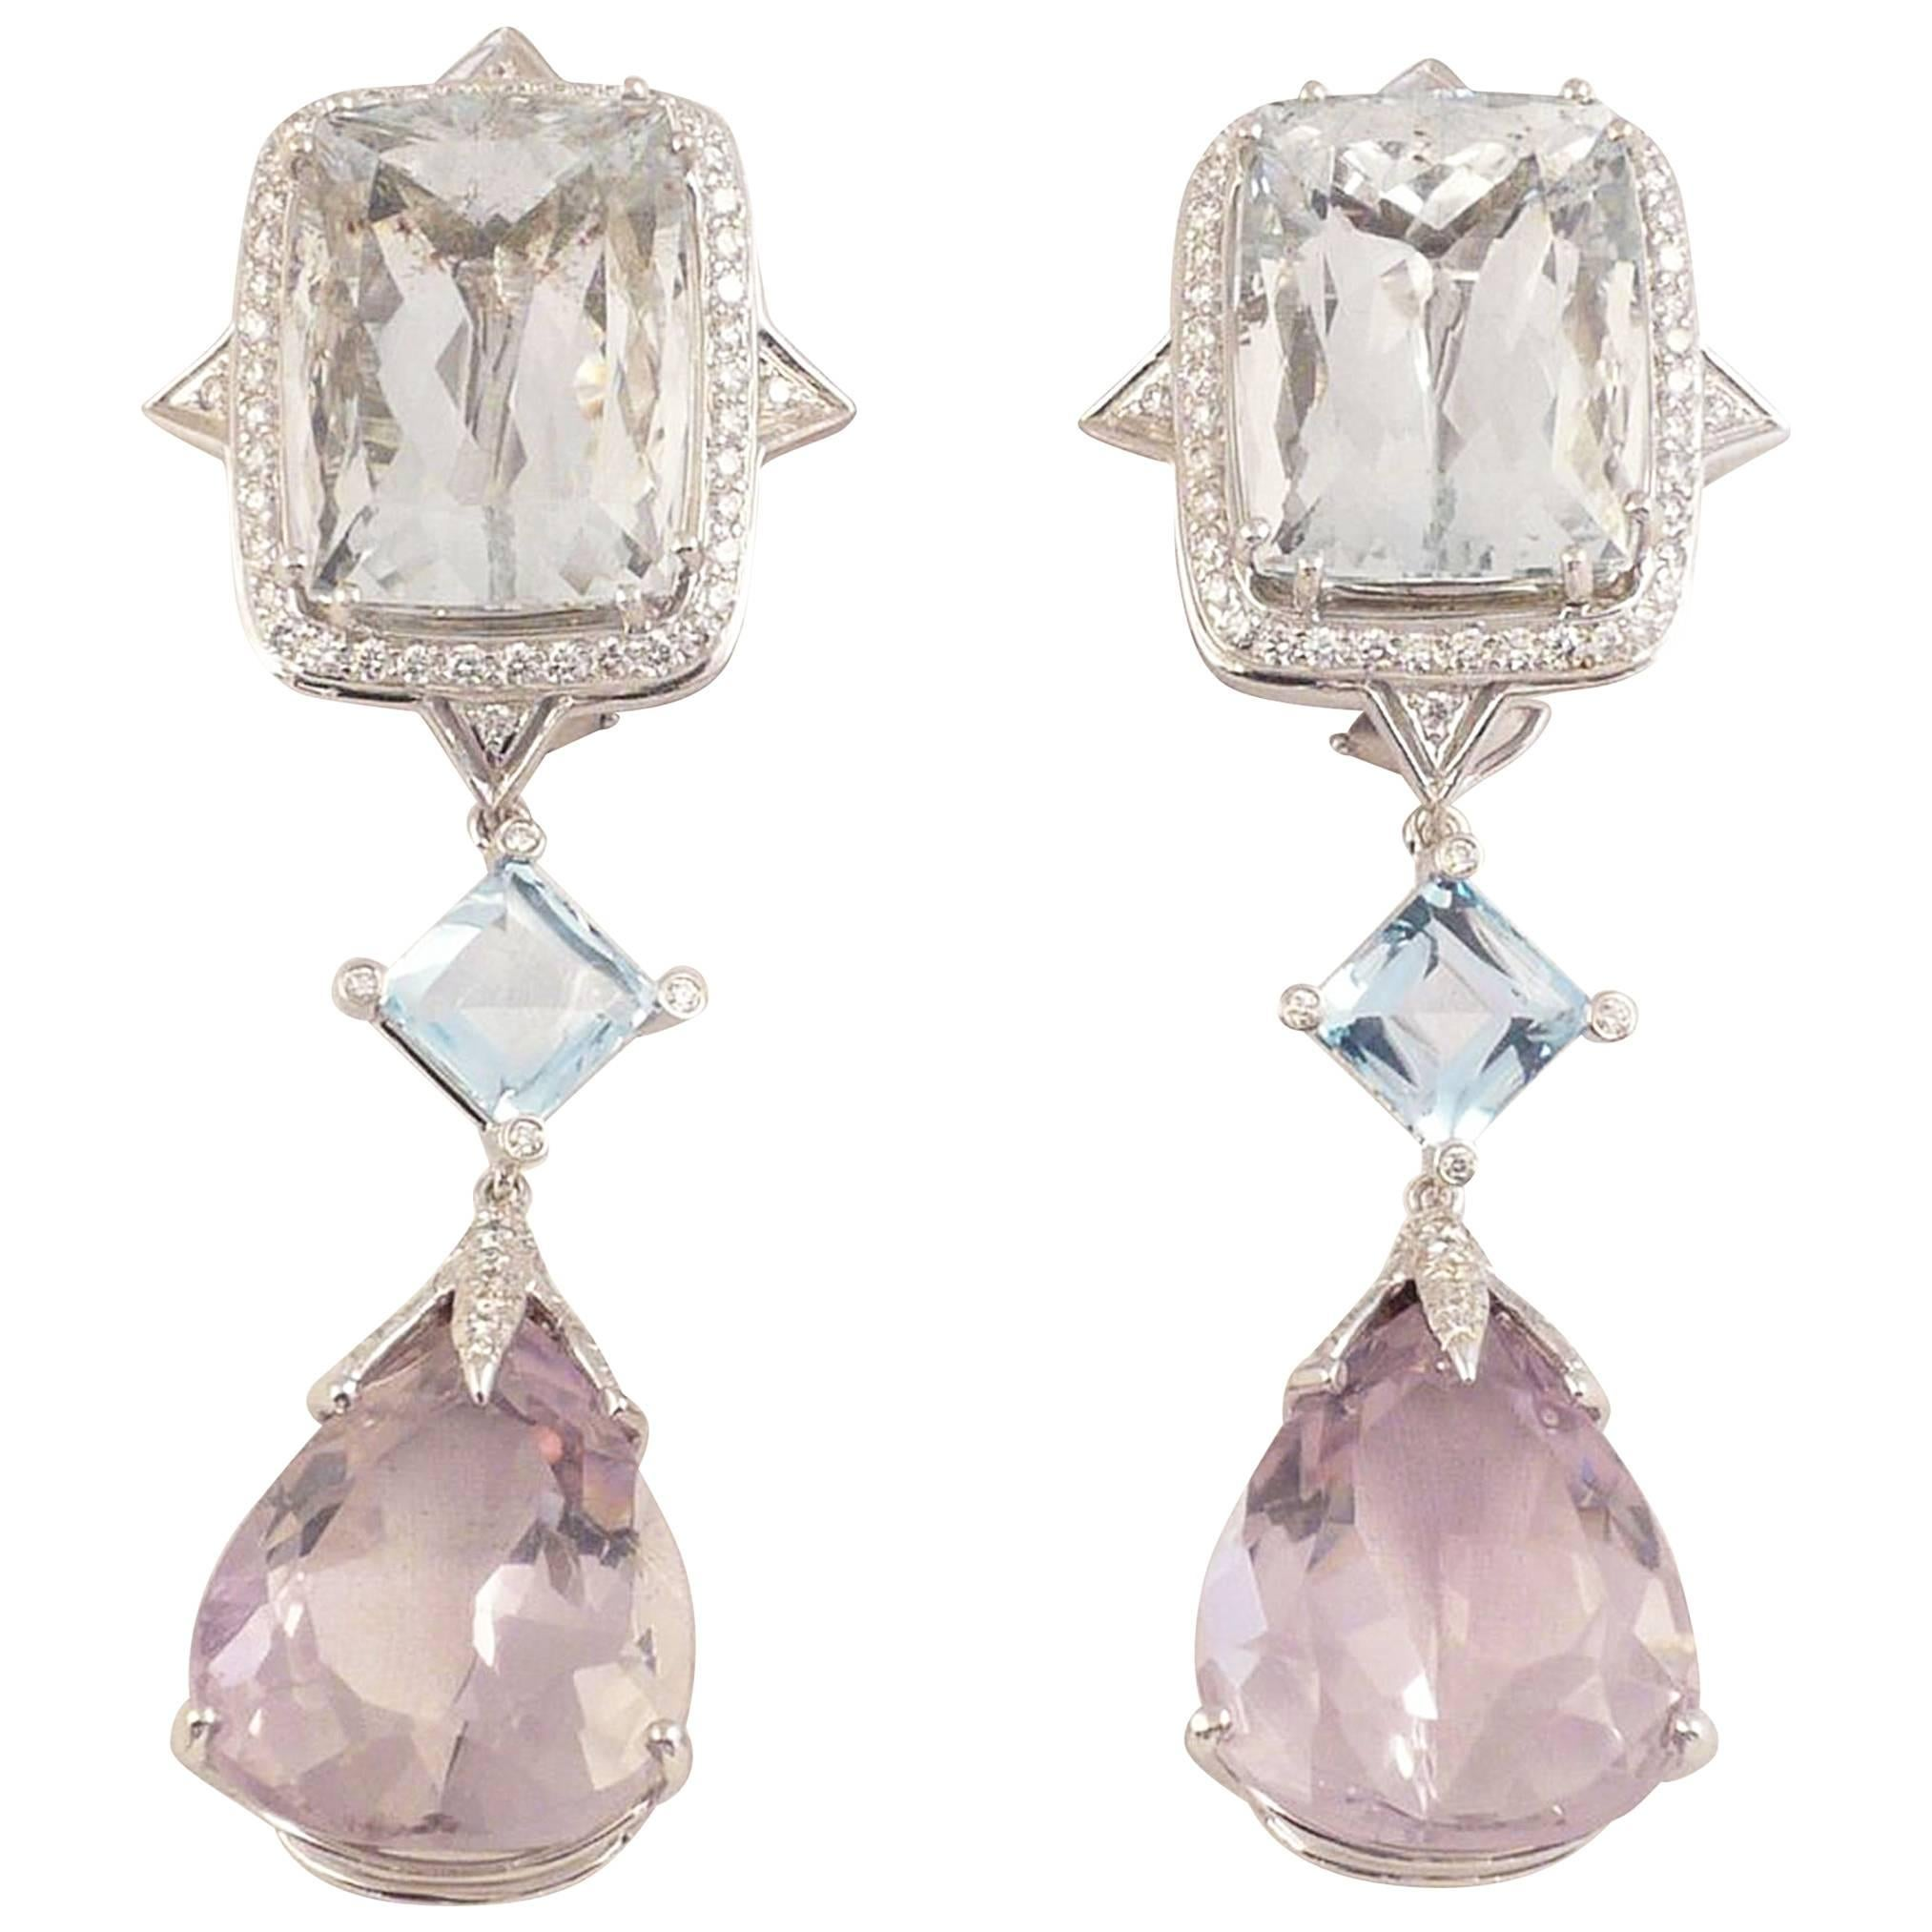 leaf kunzite earrings fullxfull il crystal with chanceldony listing description